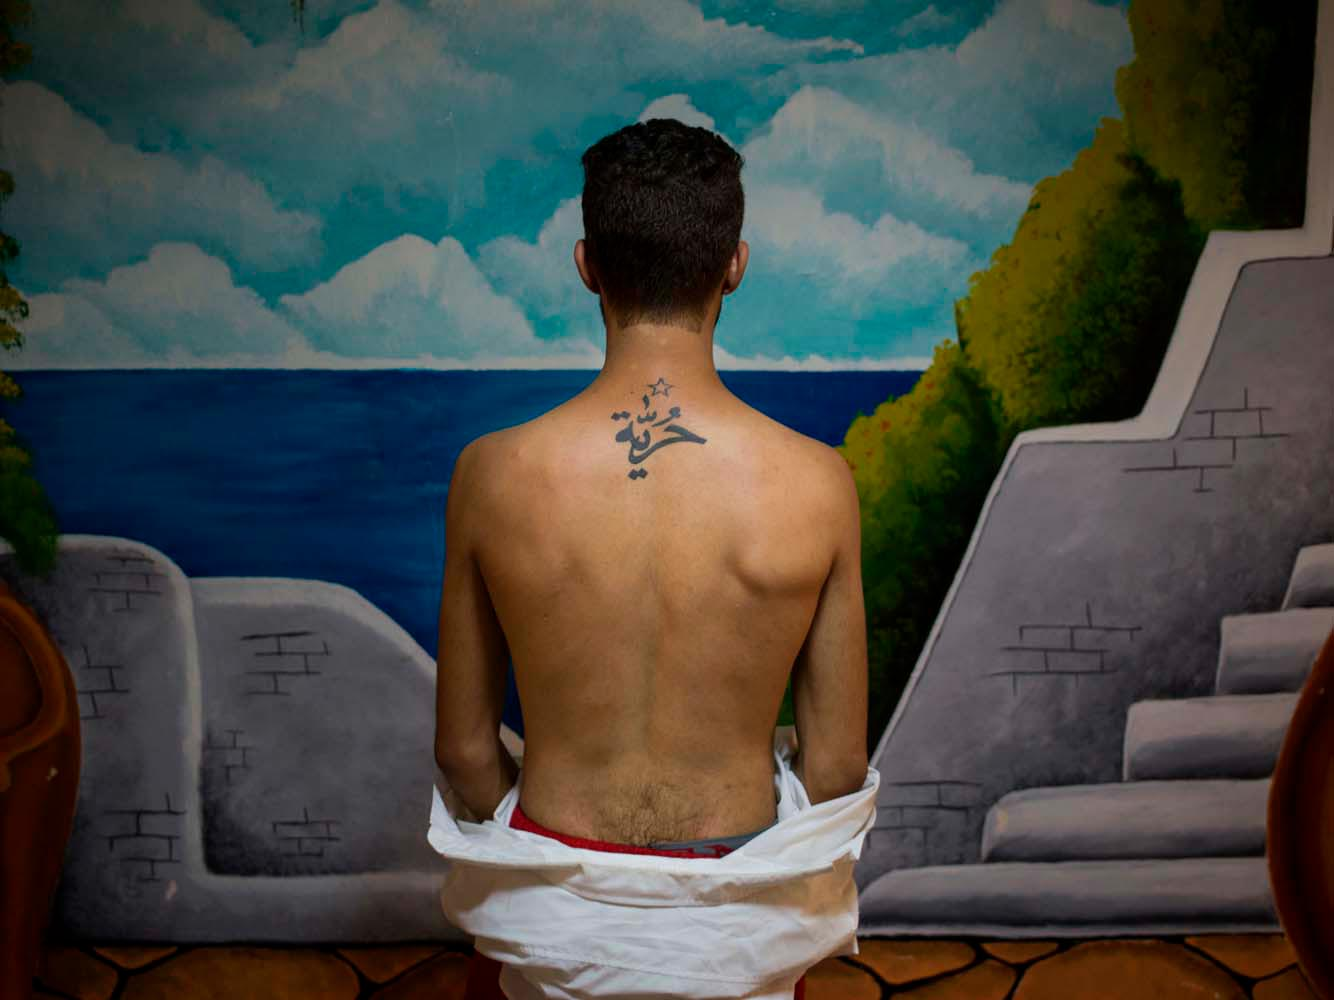 A young actor, working with the Fani Raghman Ani group, an association defending human rights in Tunisia, showing a tattoo on his back, saying 'freedom' in Arabic.